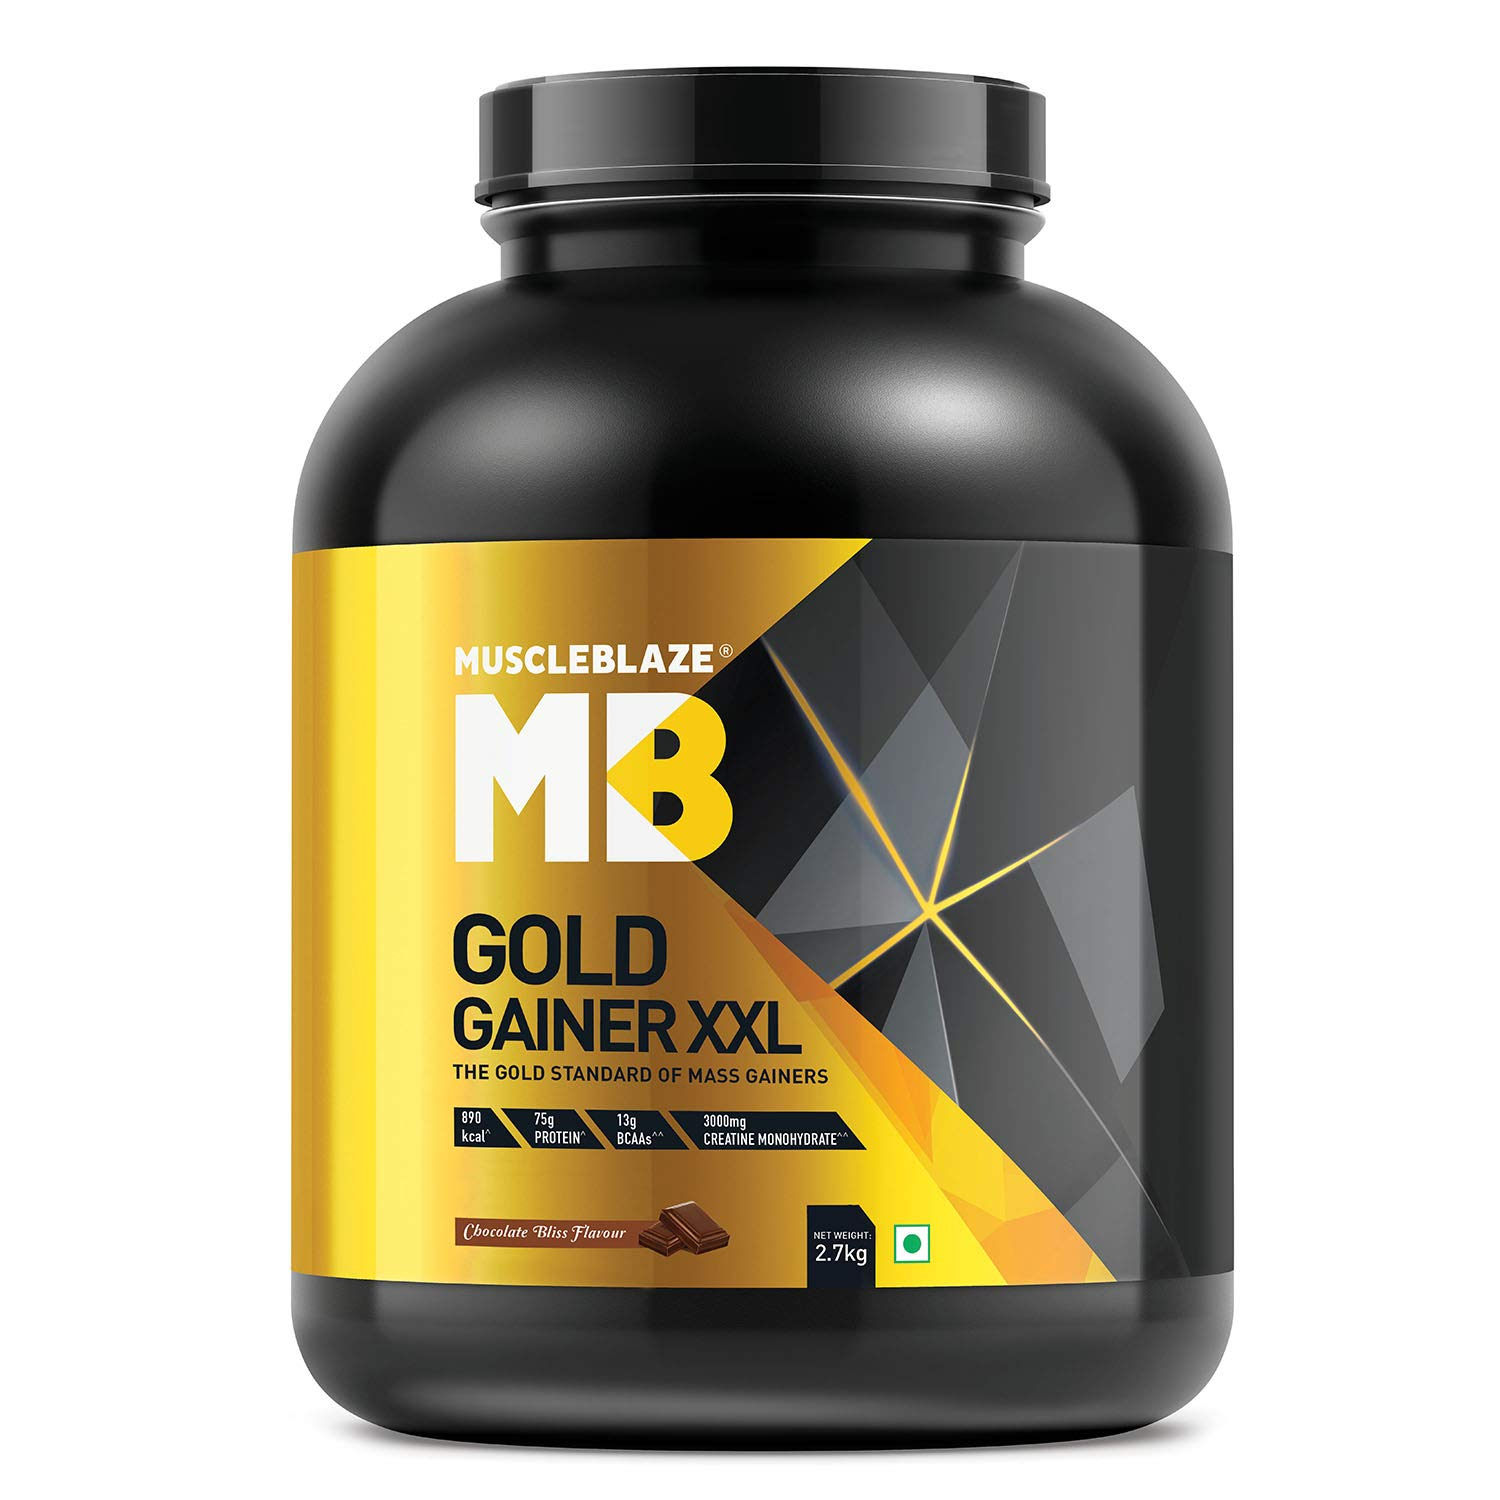 Mb Gold Gainer